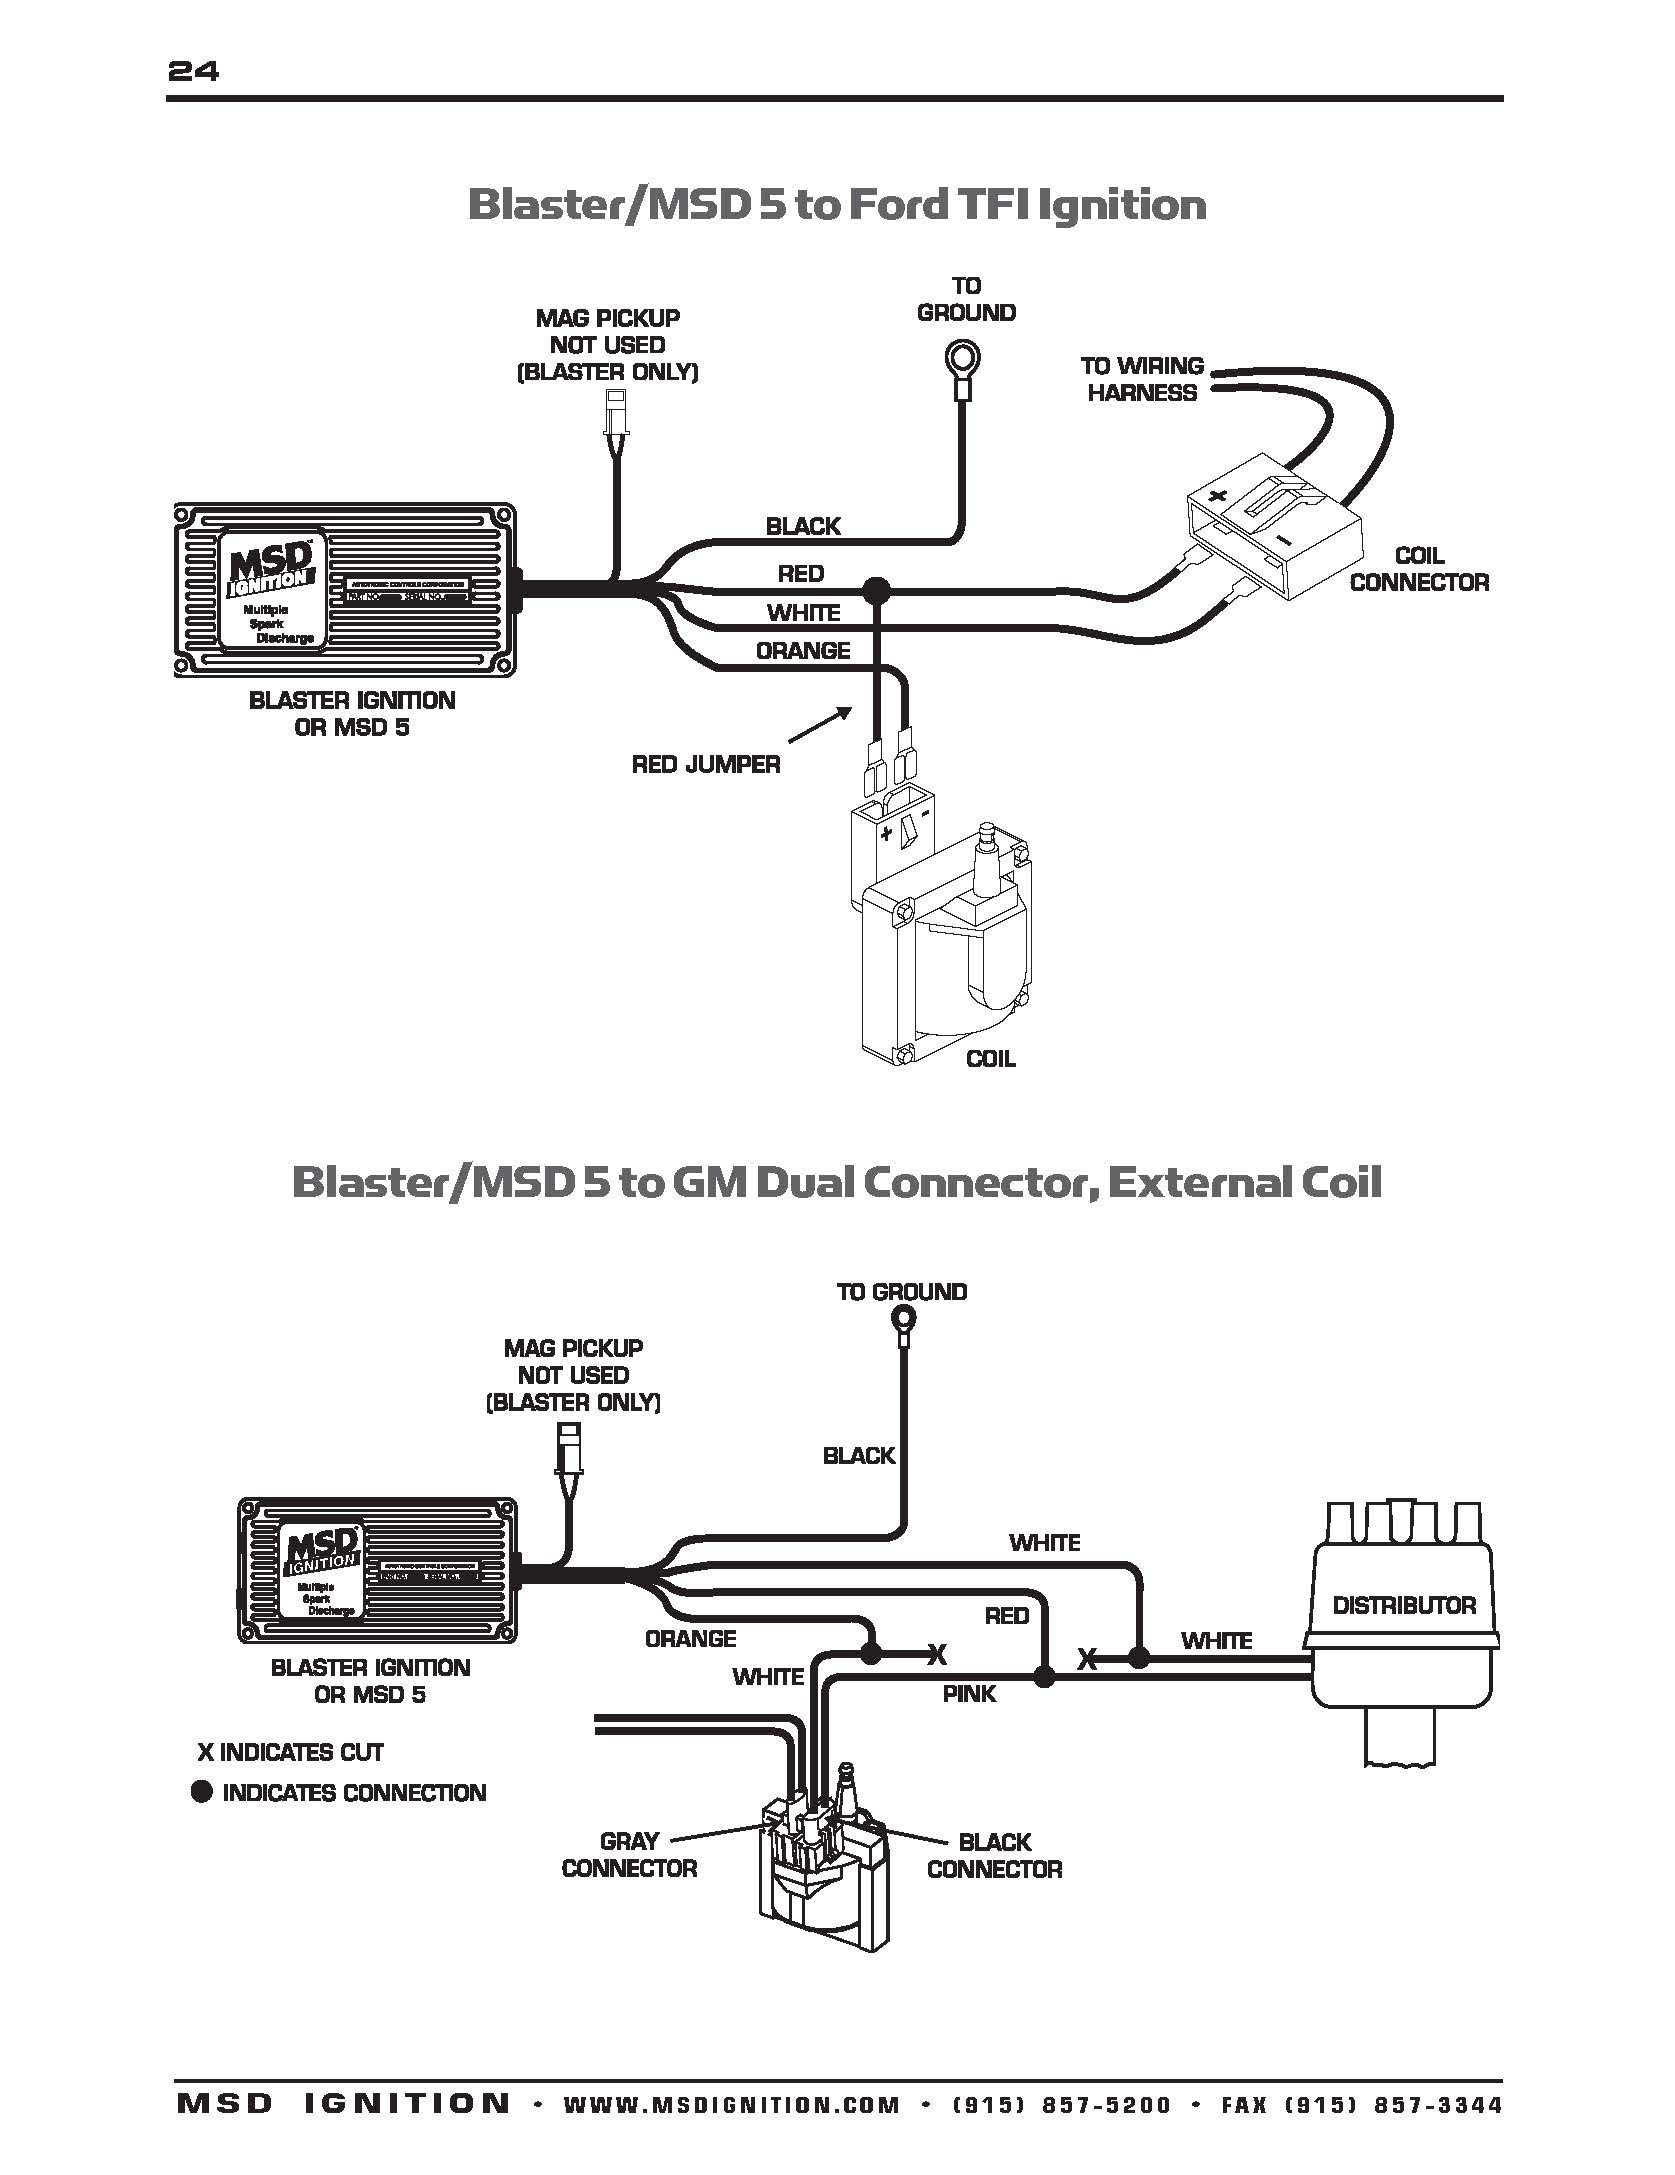 Msd Wiring Diagrams – Brianesser - Ford Ignition Coil Wiring Diagram